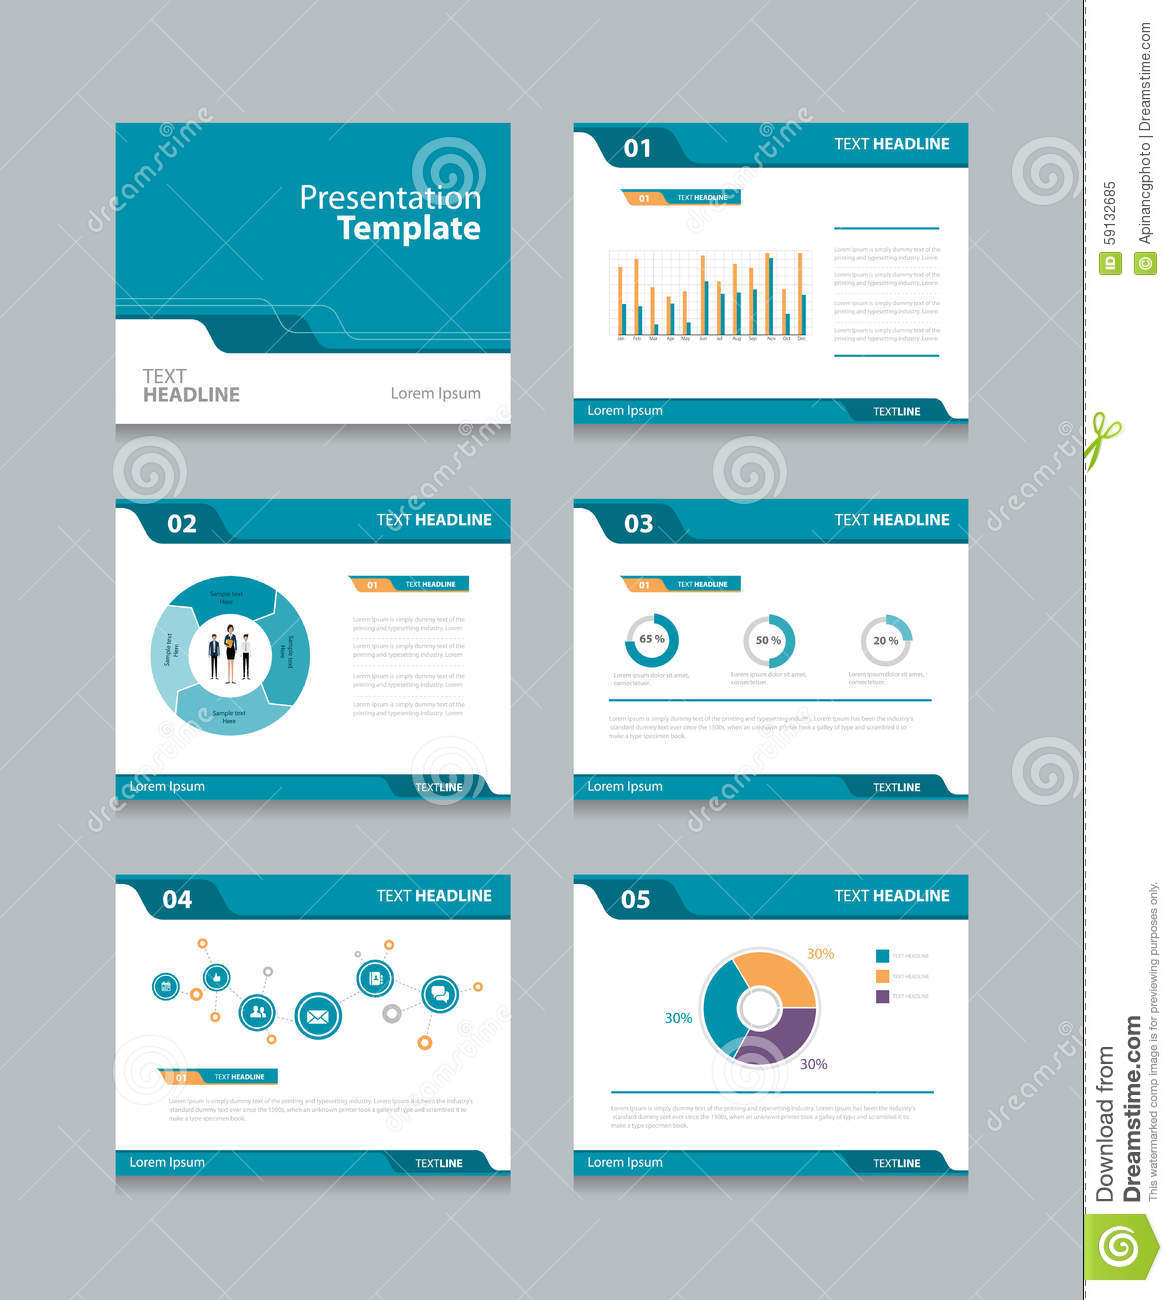 vector template presentation slides background designinfo